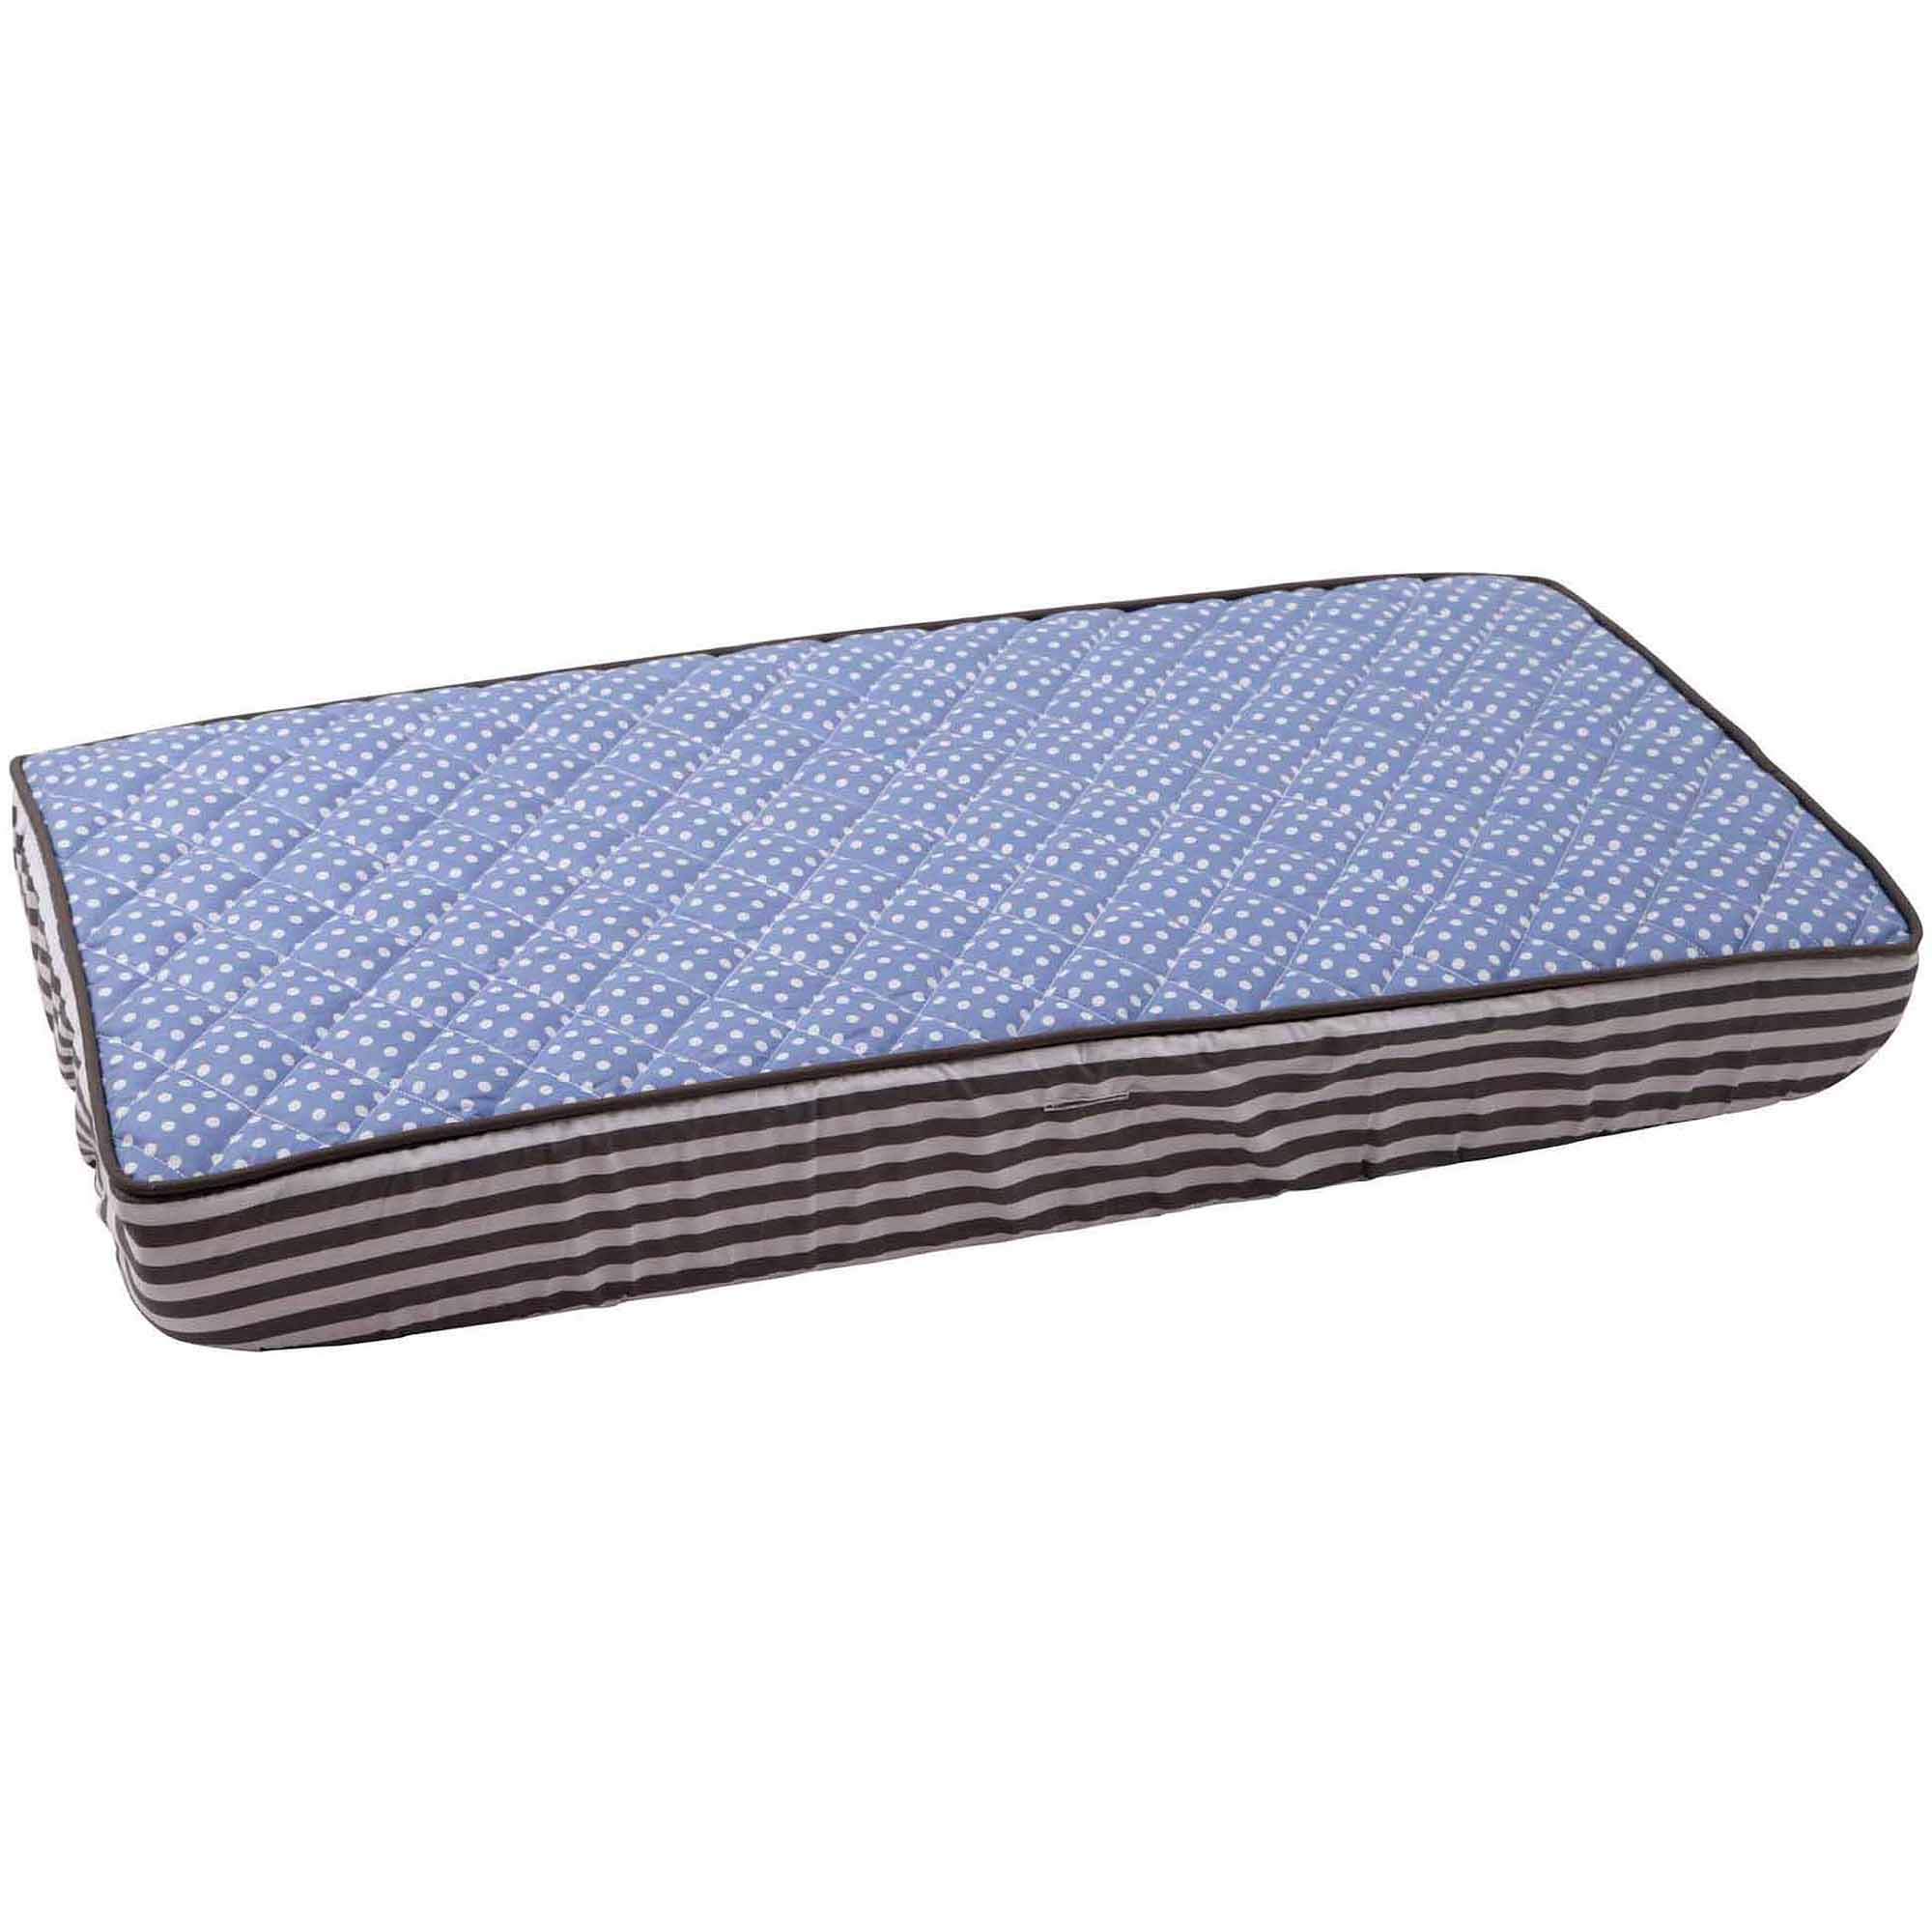 Bacati - Elephants Pin dots Quilted Top 100% Cotton Percale with Polyester Batting Diaper Changing Pad Cover, Blue/Gray